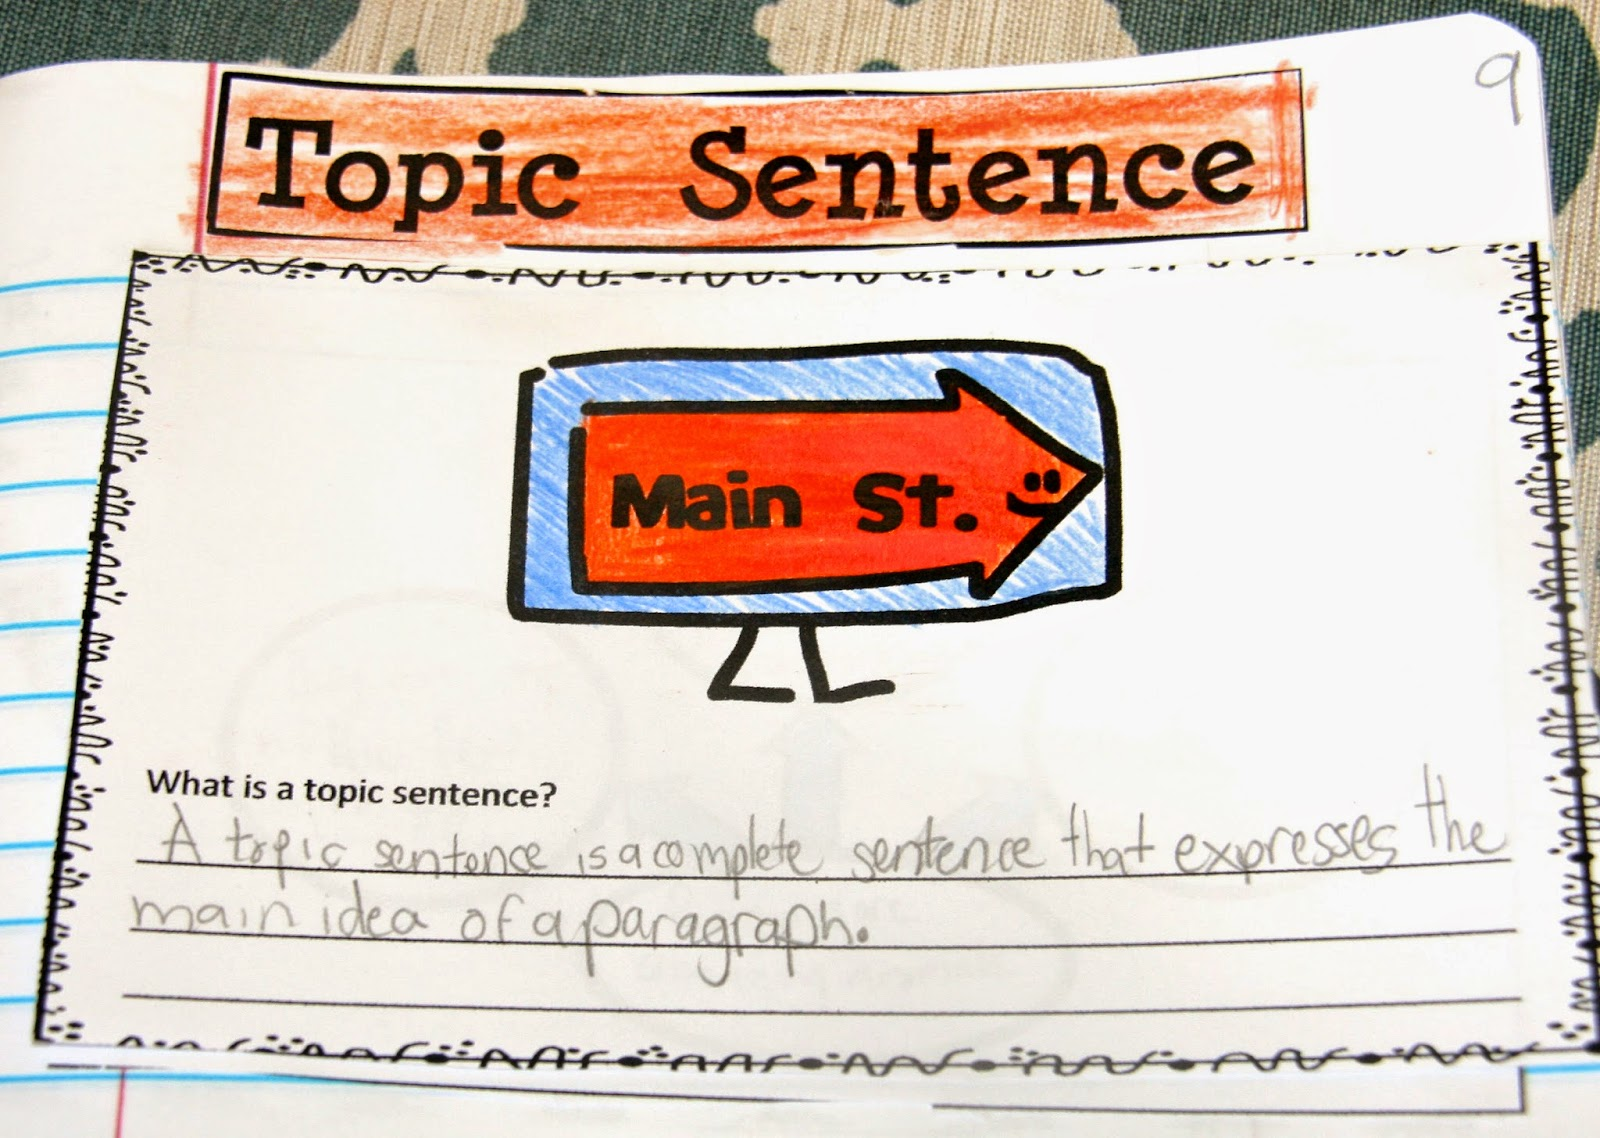 a topic sentence is a complete sentence that expresses the main idea of a paragraph